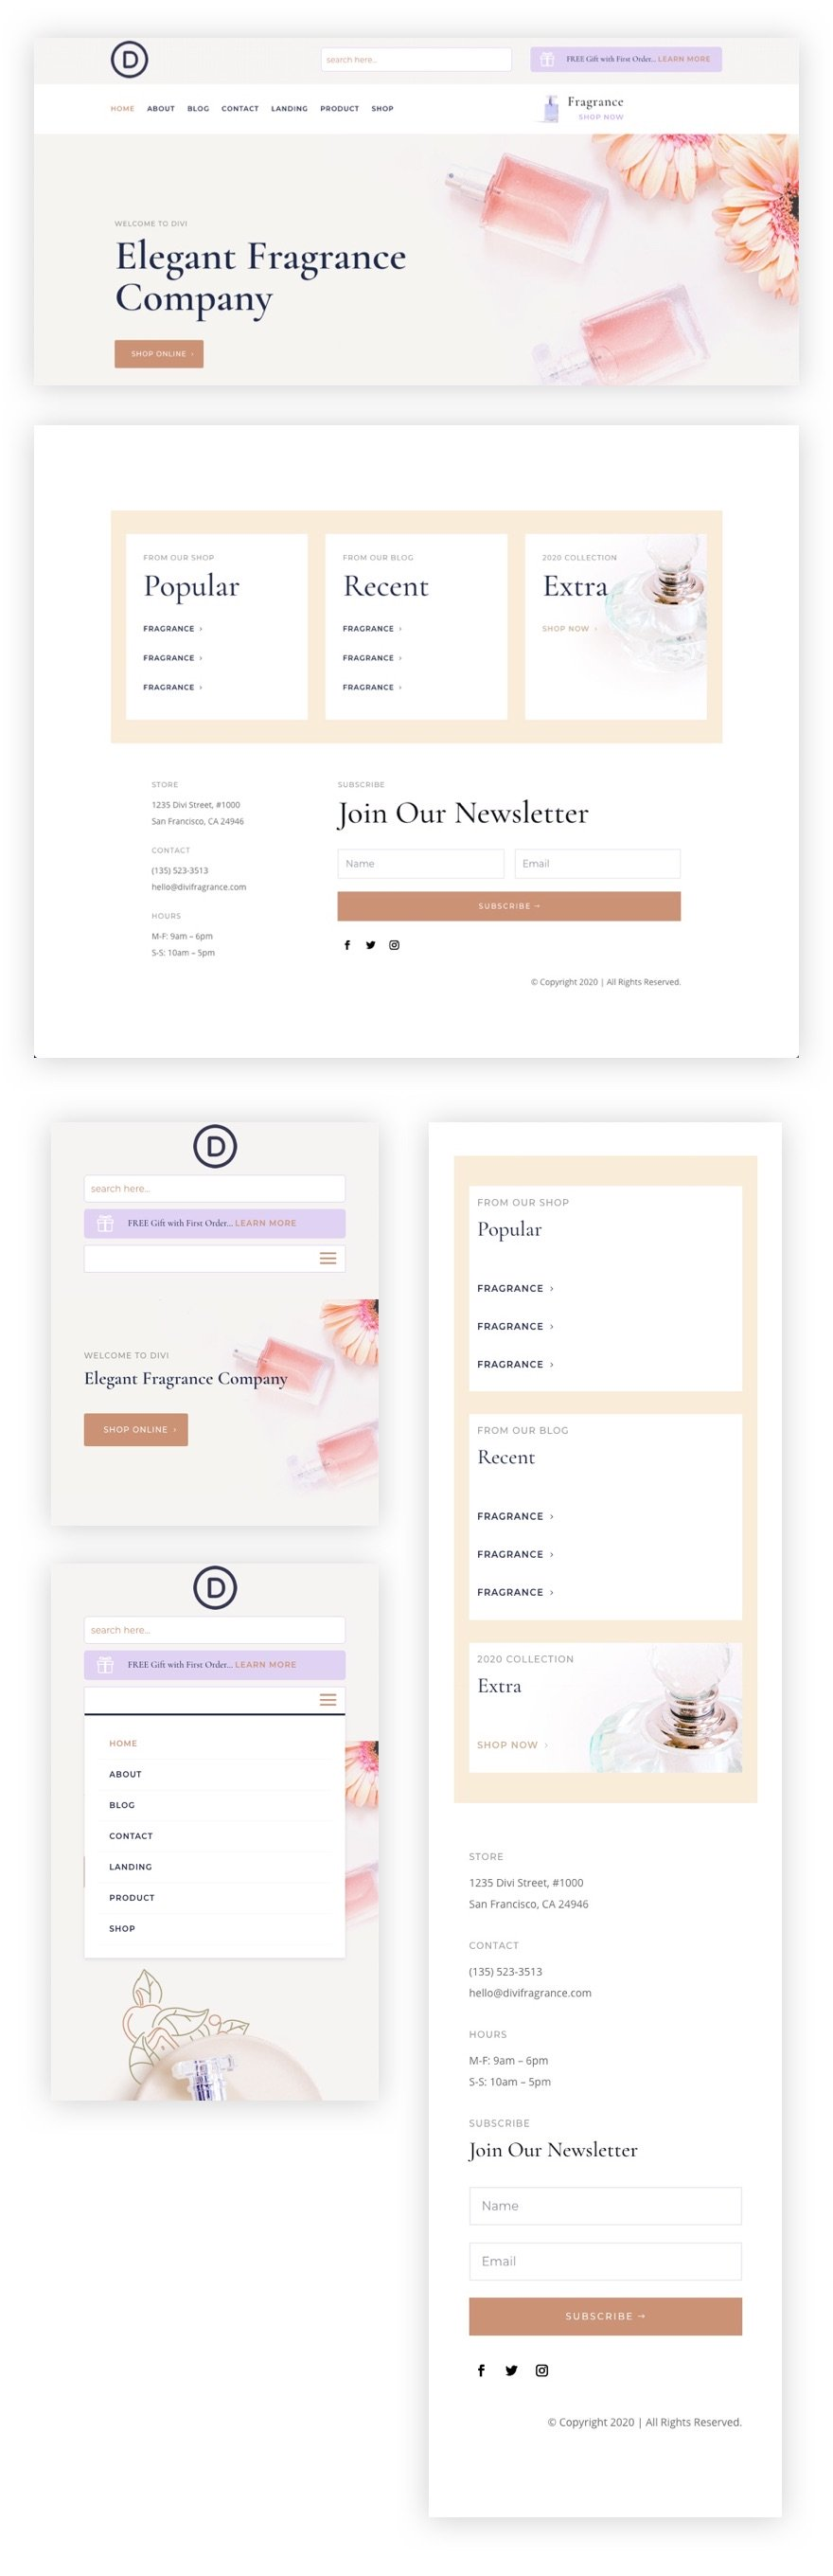 download-a-free-header-footer-template-for-divis-perfumery-layout-pack Download a FREE Header & Footer Template for Divi's Perfumery Layout Pack